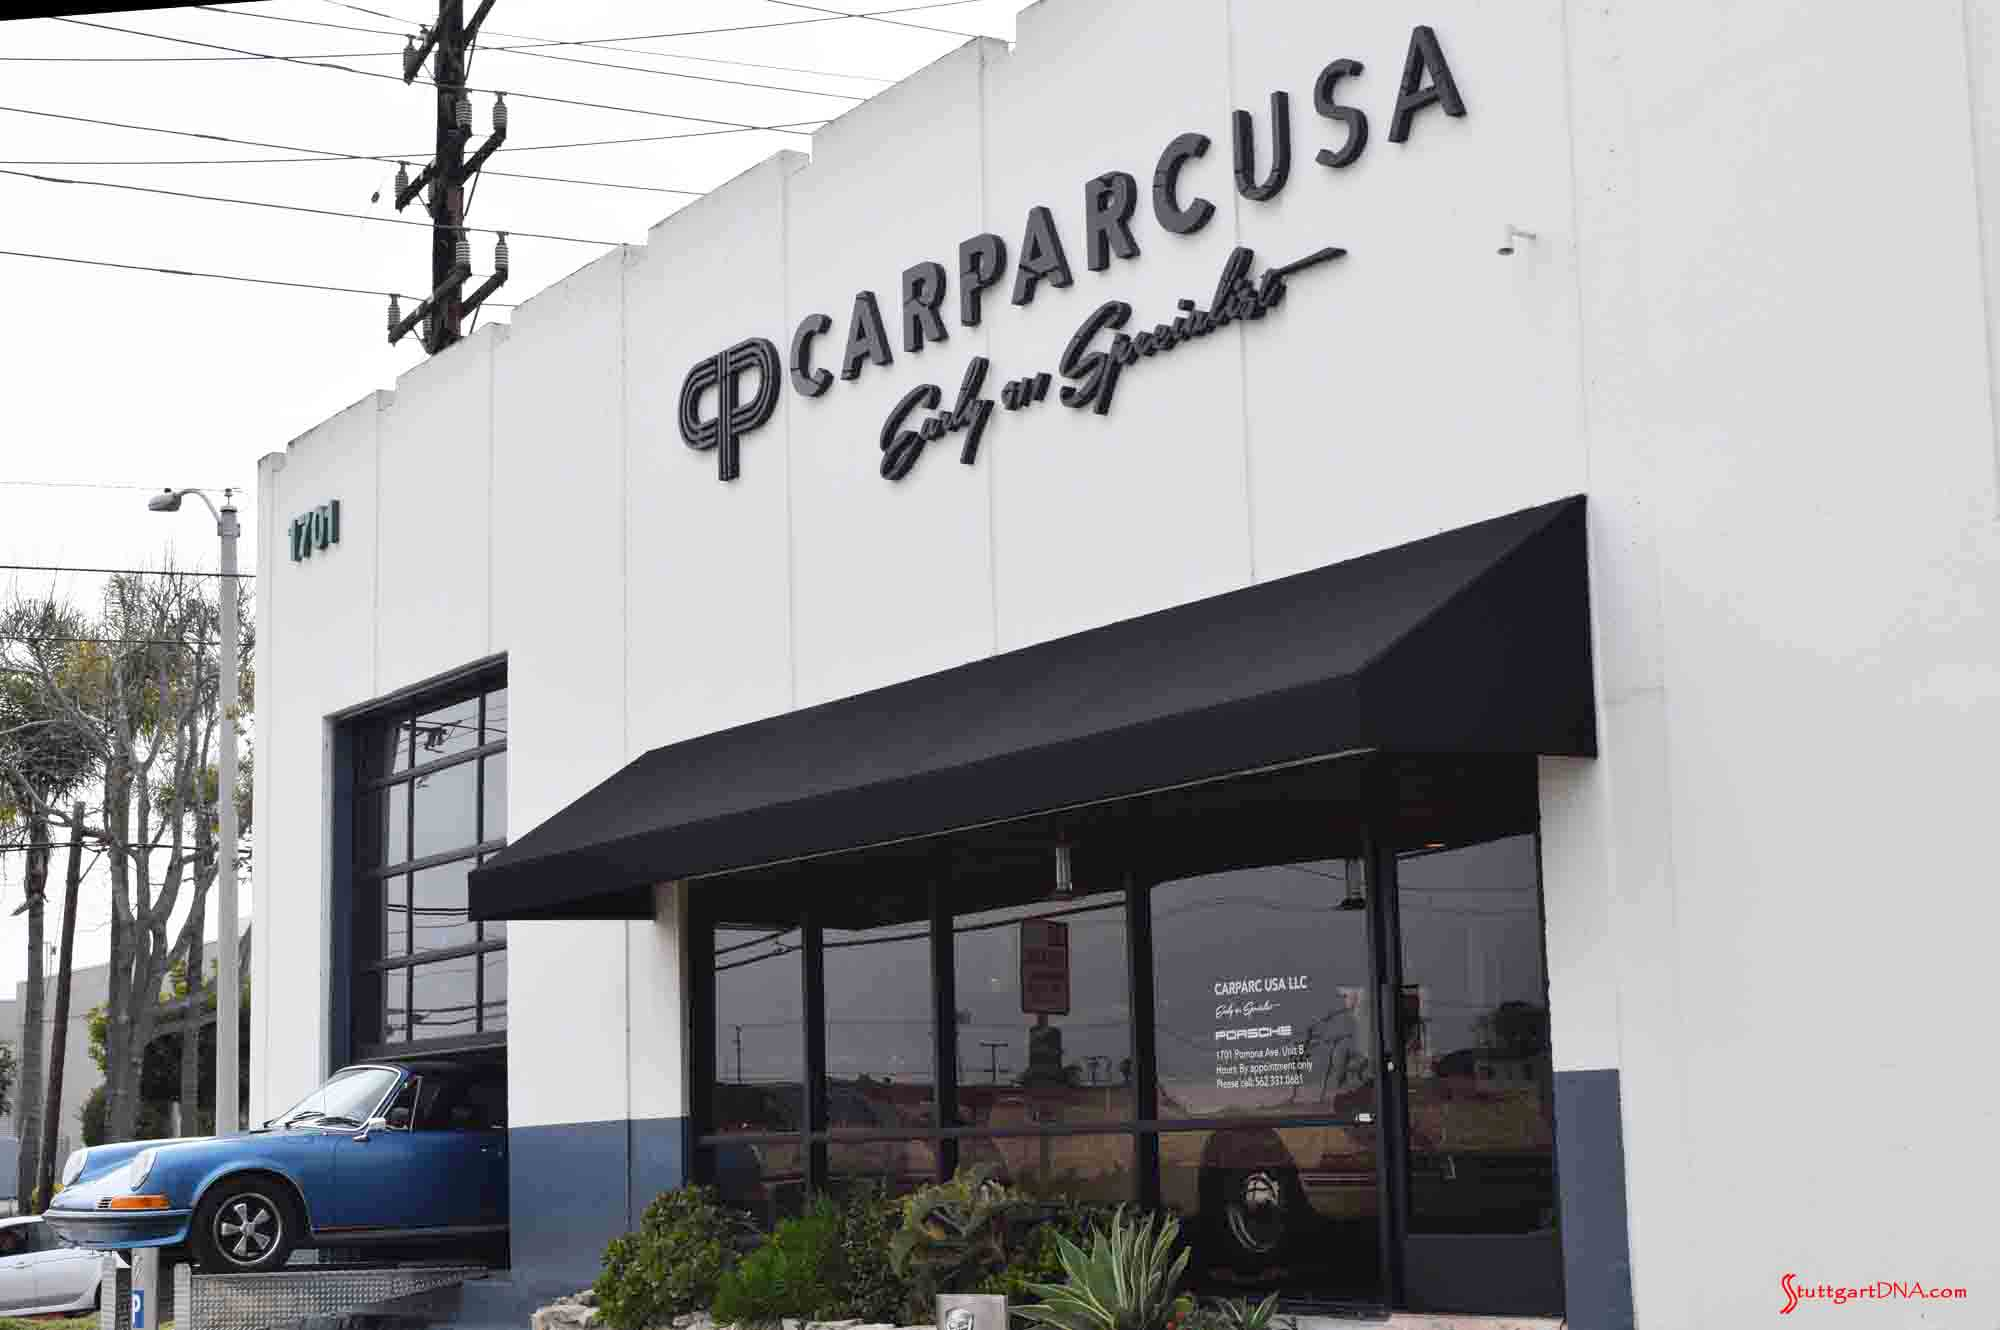 Pictured here is the Carparc USA facade during the 2017 Porsche L.A. Lit Meet Weekend., with signage out front up high and a blue 911 Targa extending out front through the open garage door in b.g. Credit: StuttgartDNA